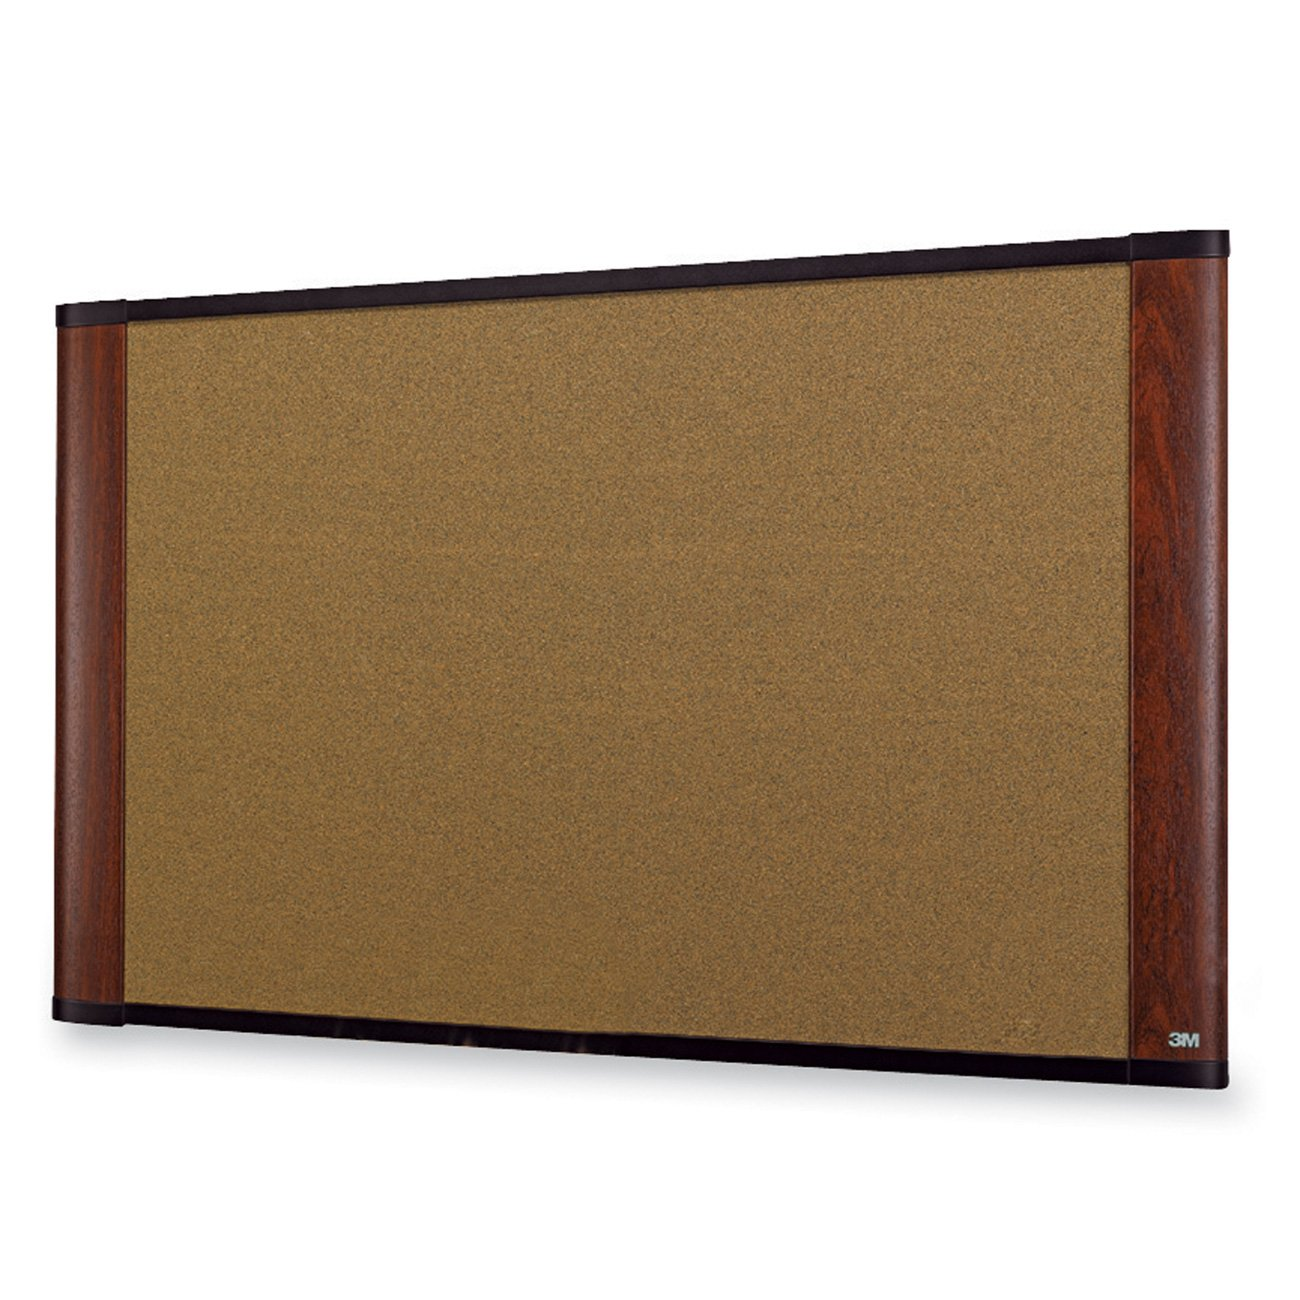 3M 36'' x 24'' Cork Board, Mahogany Finish Frame (C3624MY)